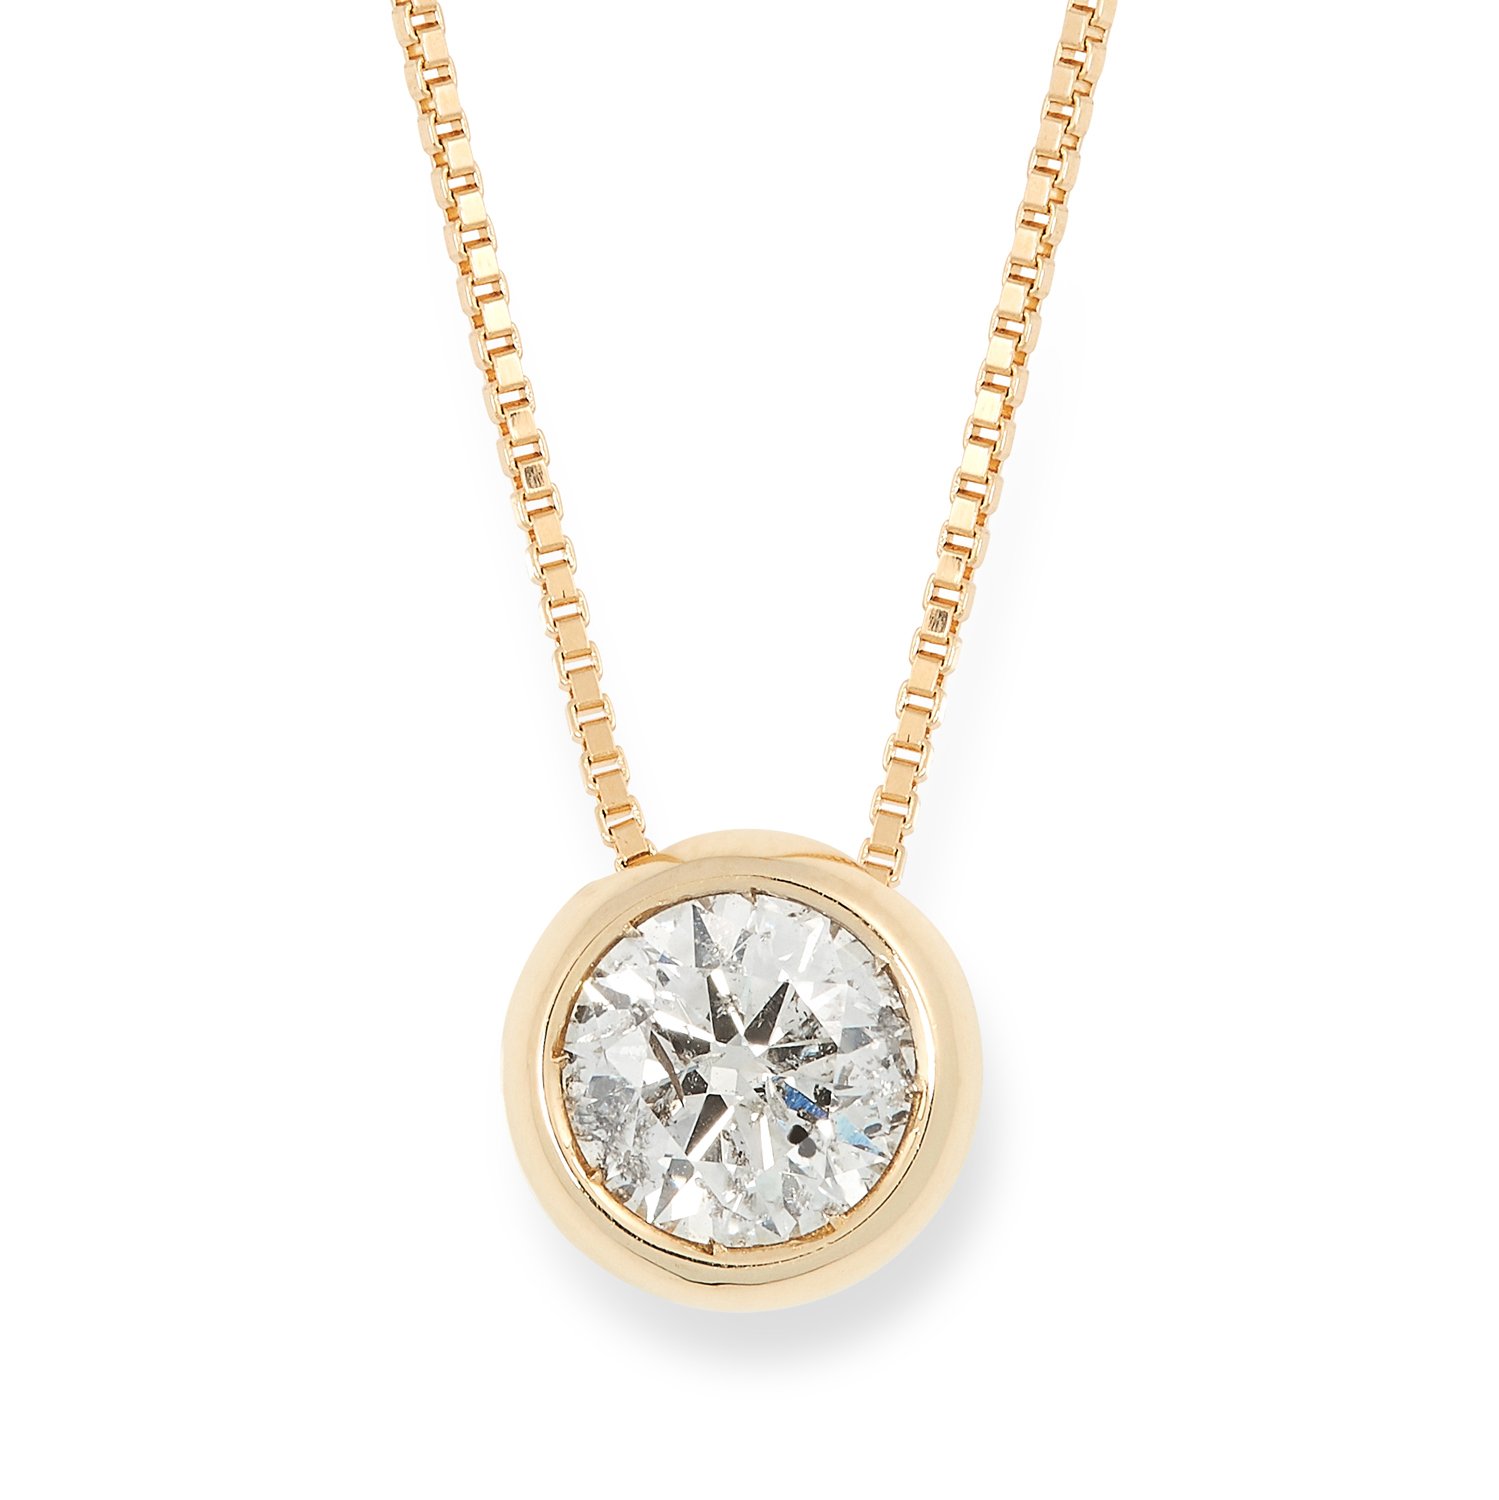 A 1.03 CARAT DIAMOND PENDANT AND CHAIN set with a round modern brilliant cut diamond of 1.03 carats,